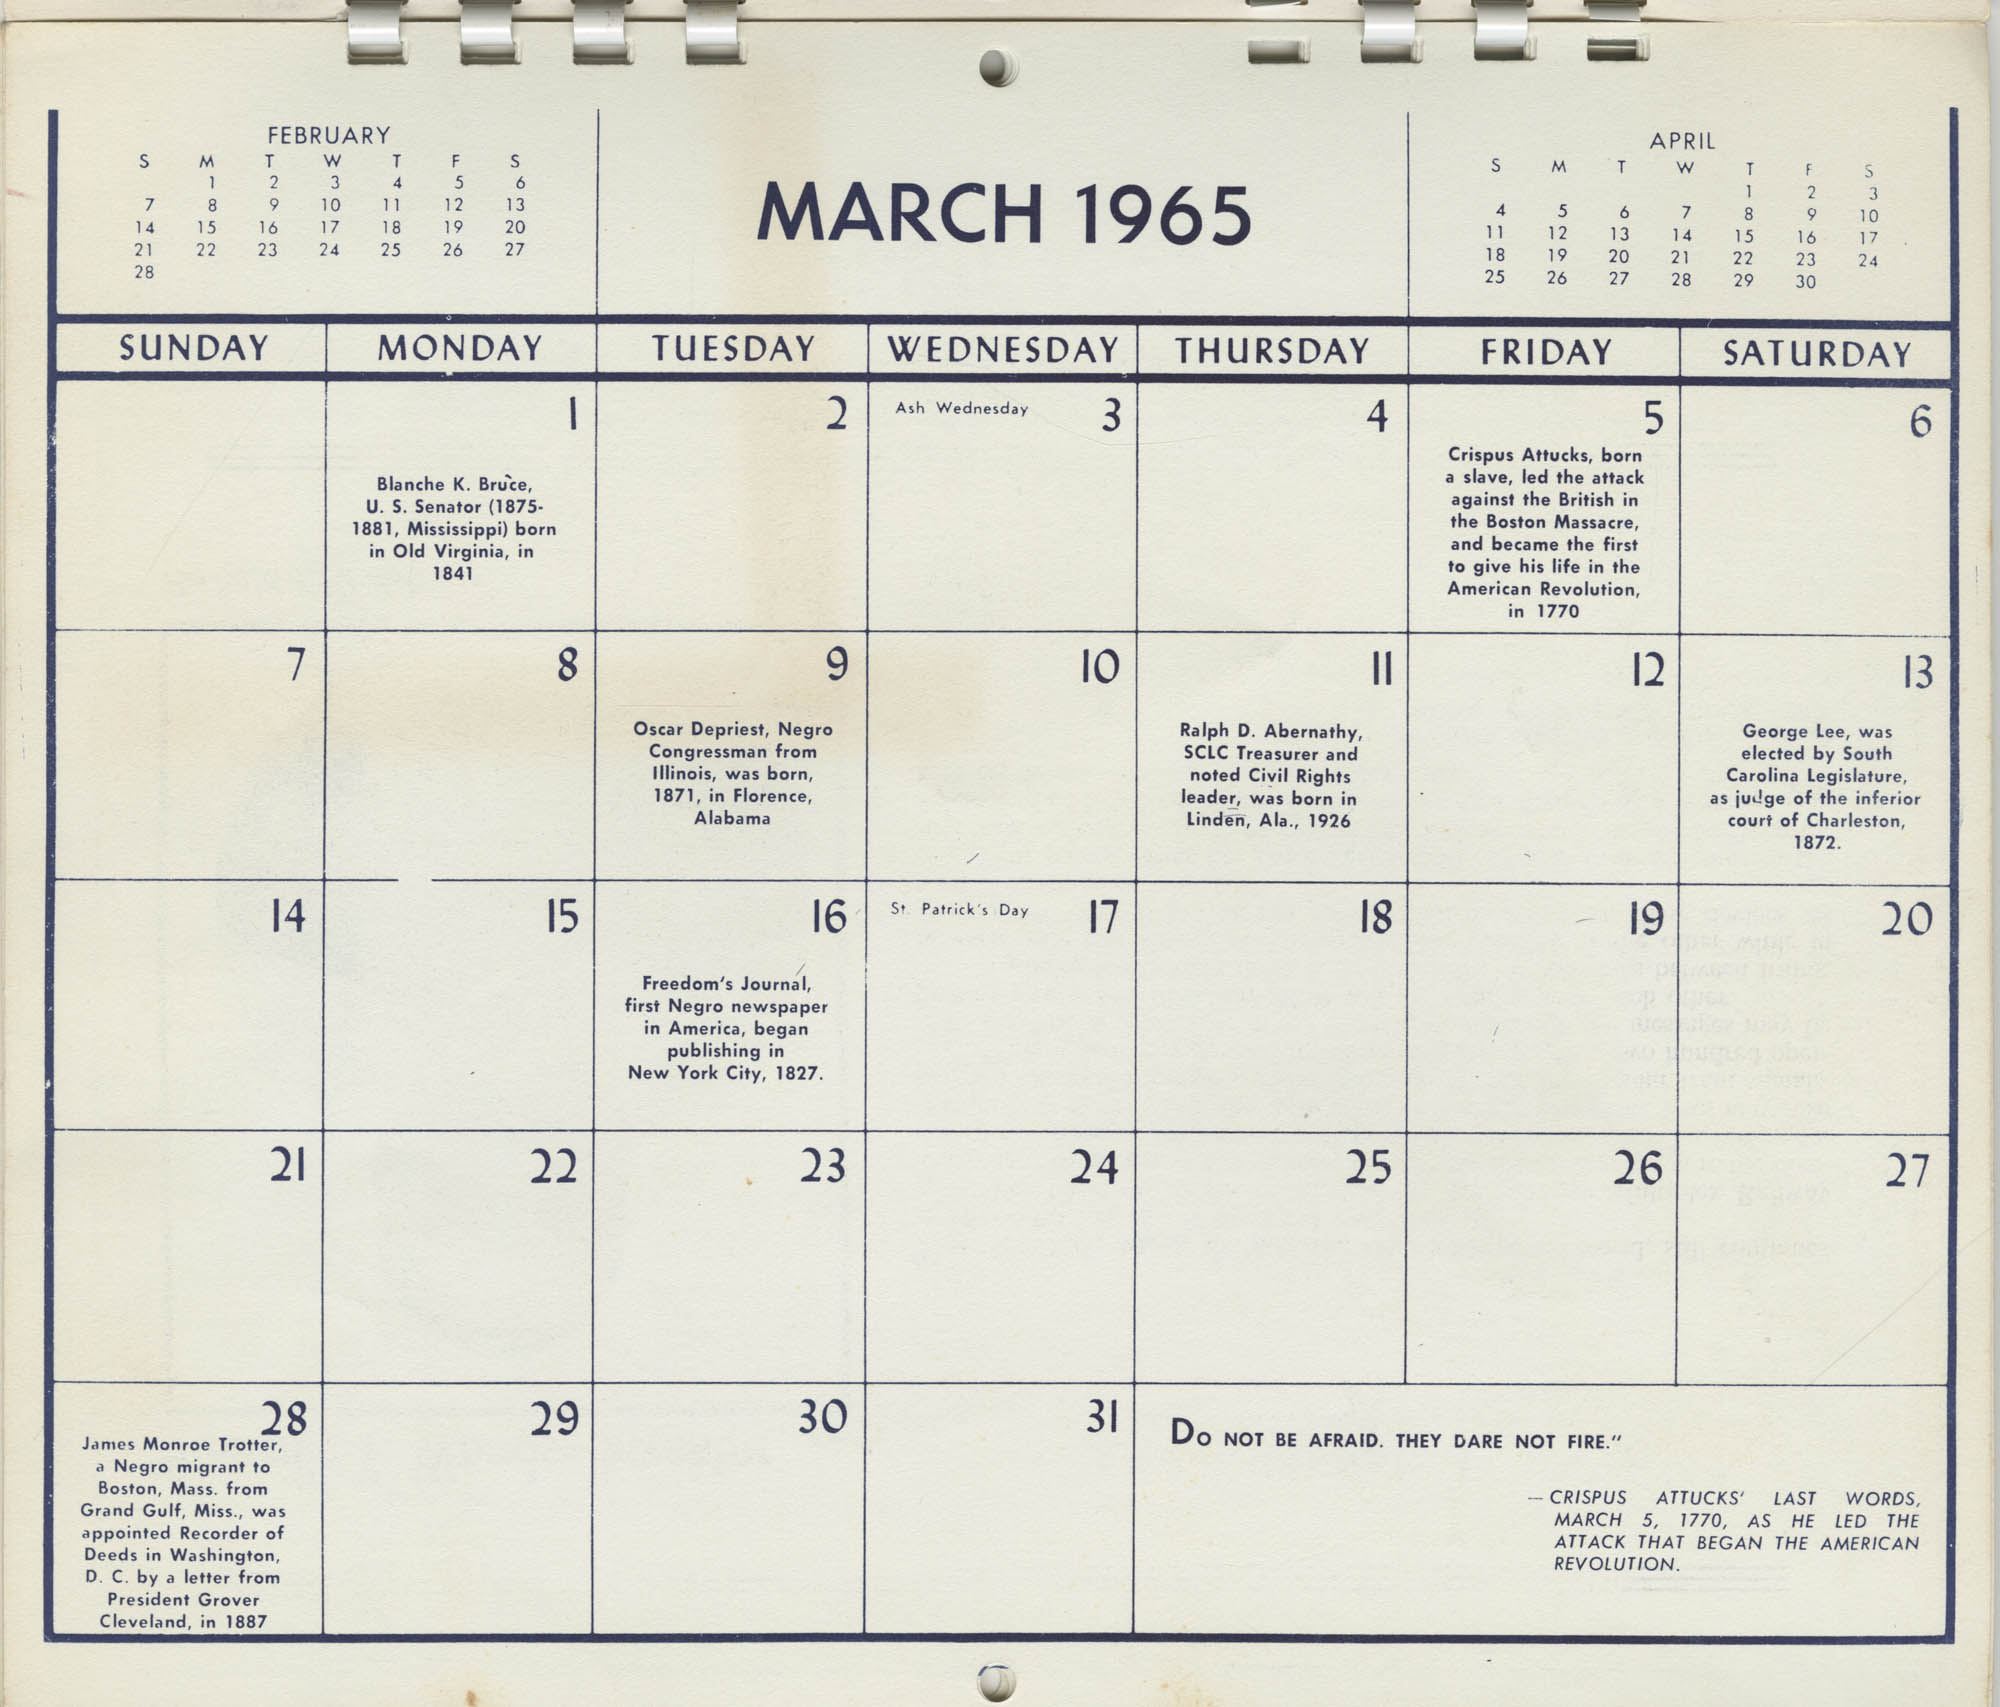 Southern Christian Leadership Conference Newsletter Calendar, March 1965, Bottom